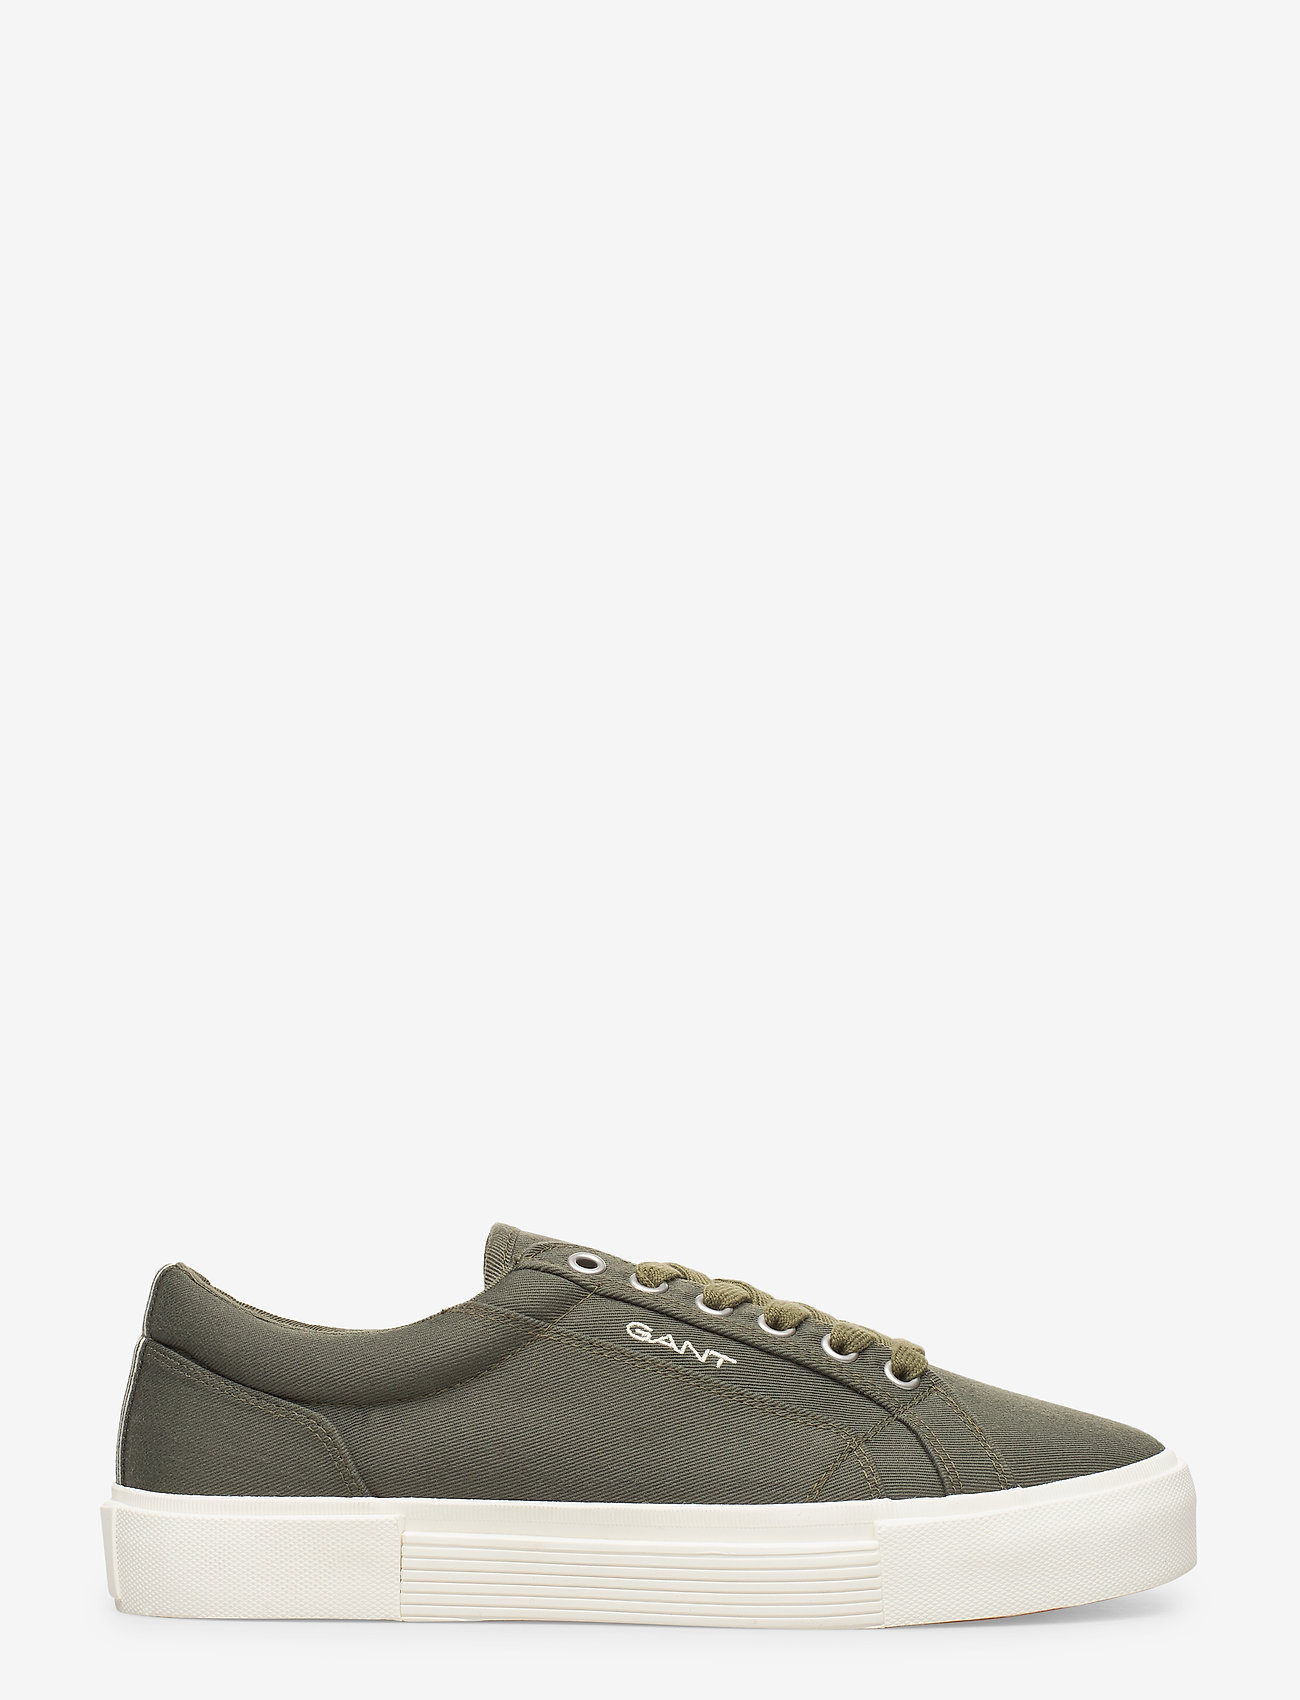 GANT - Champroyal Low laceshoes - low tops - leaf green - 1